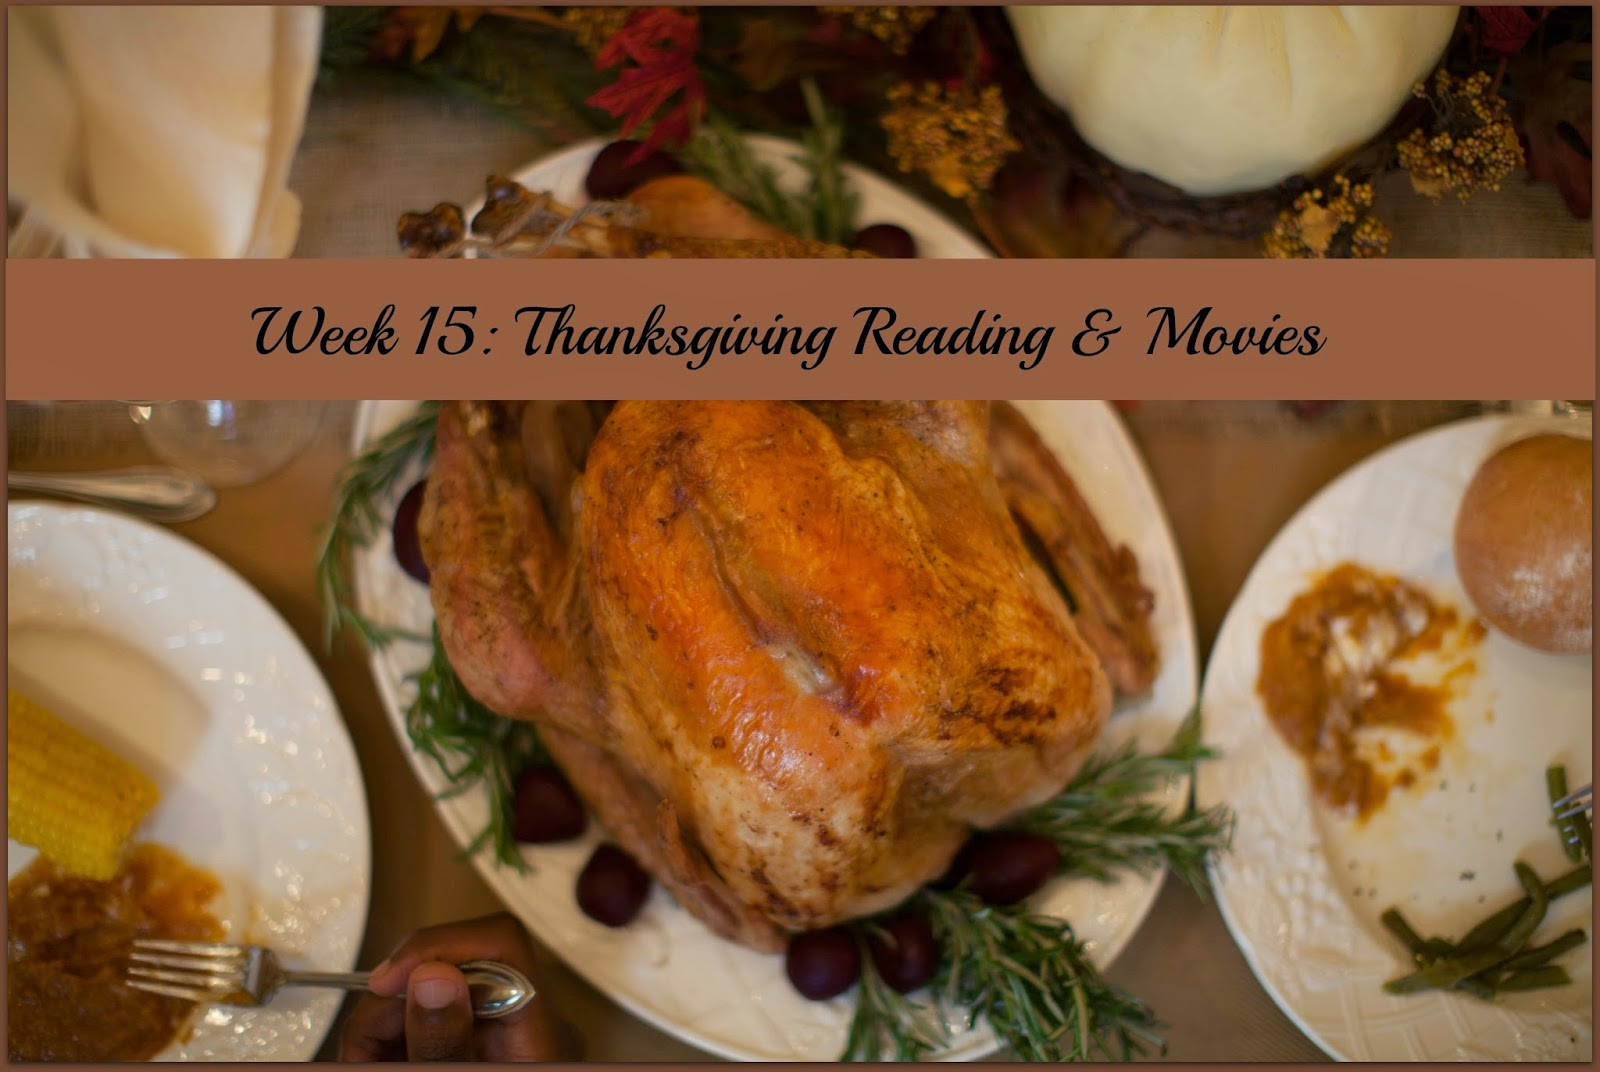 Week 15: Thanksgiving